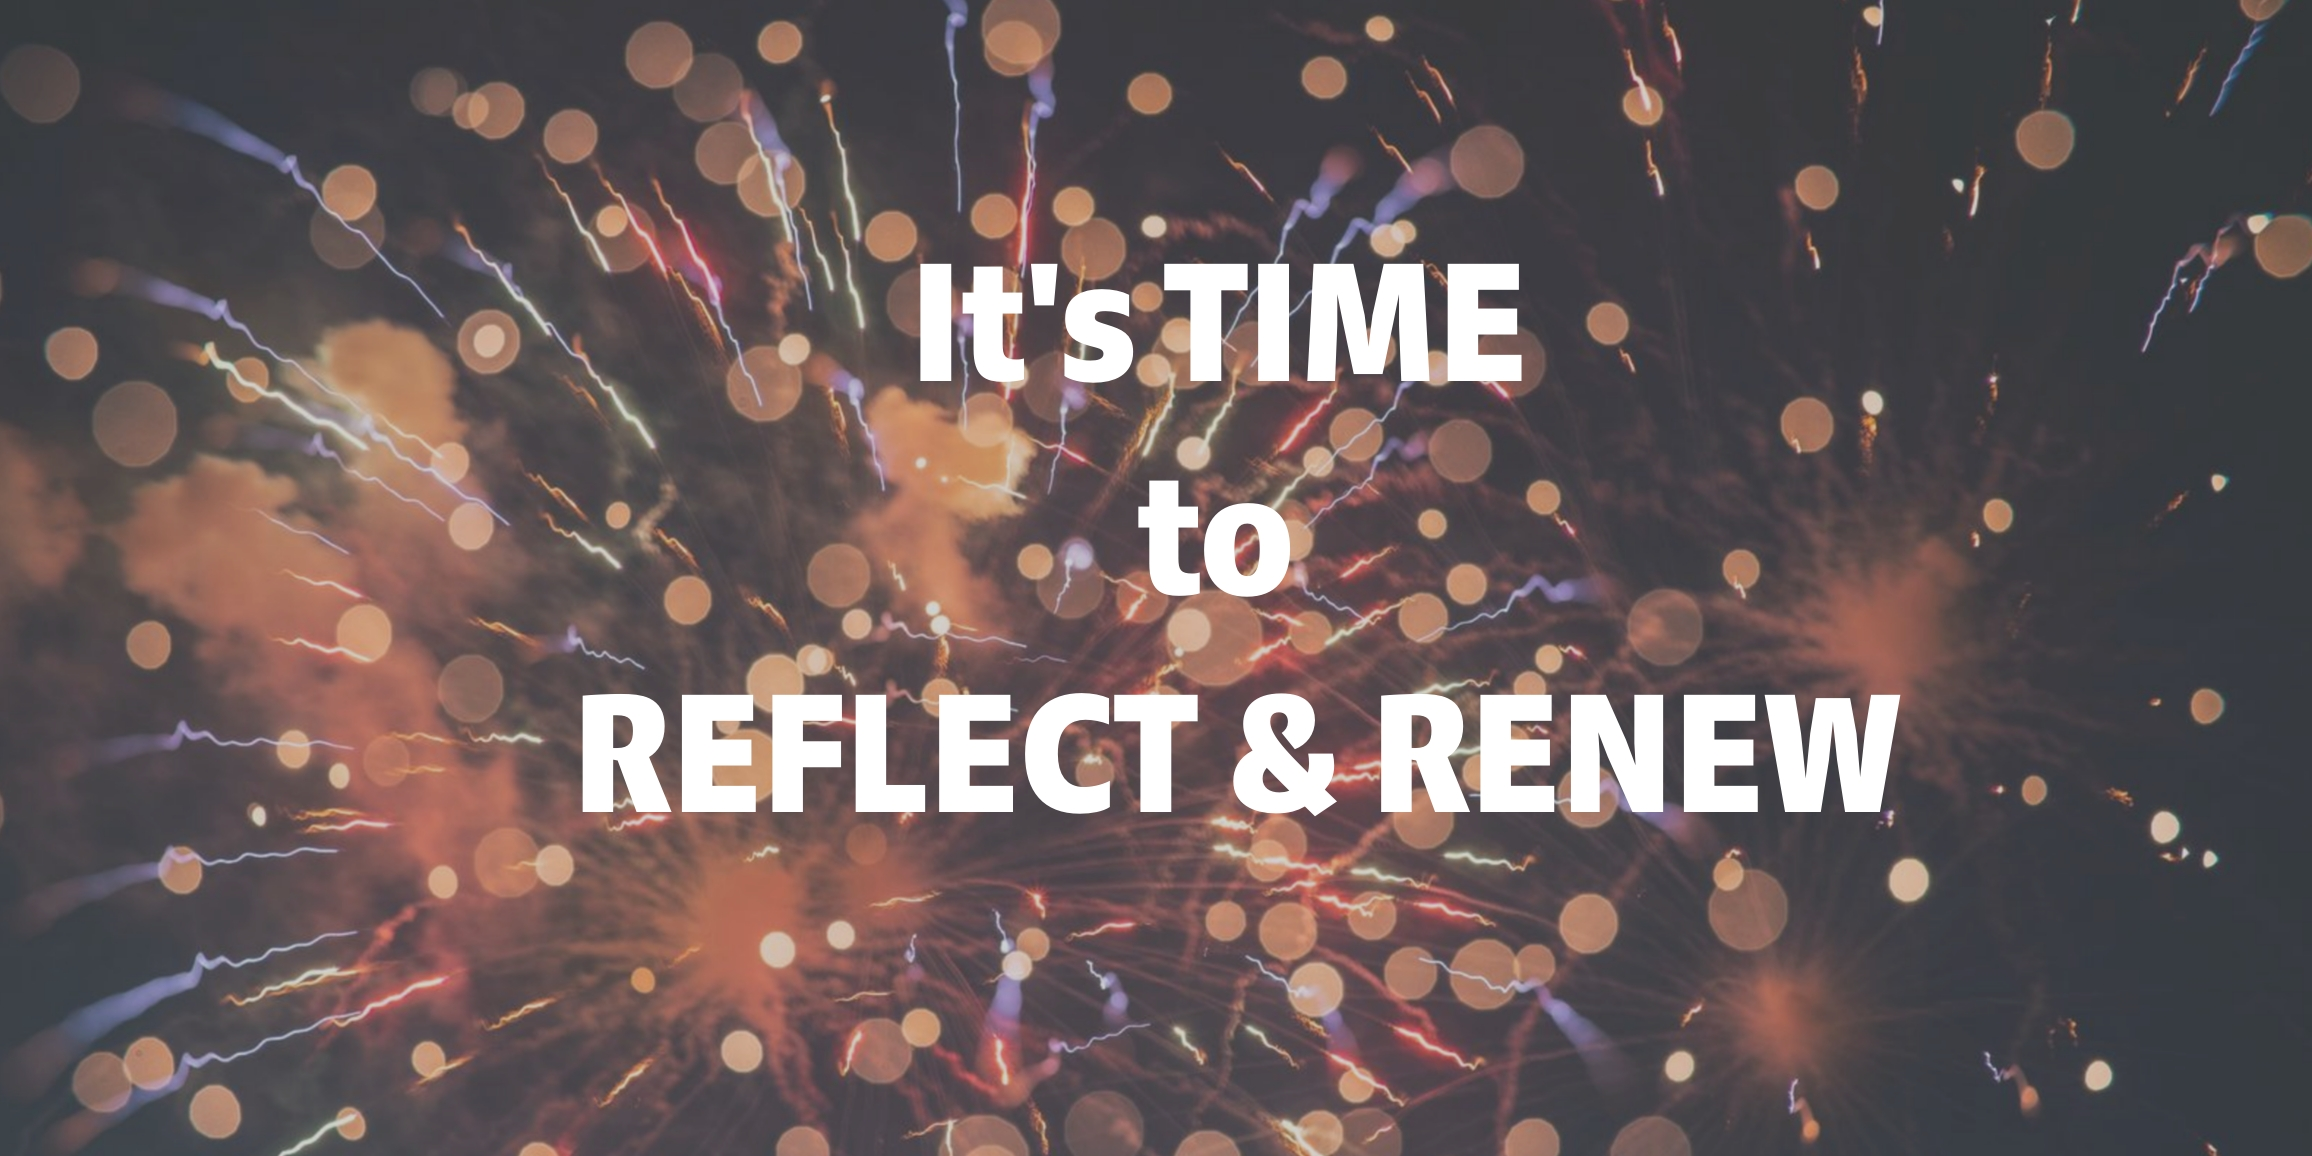 it's time to reflect and renew